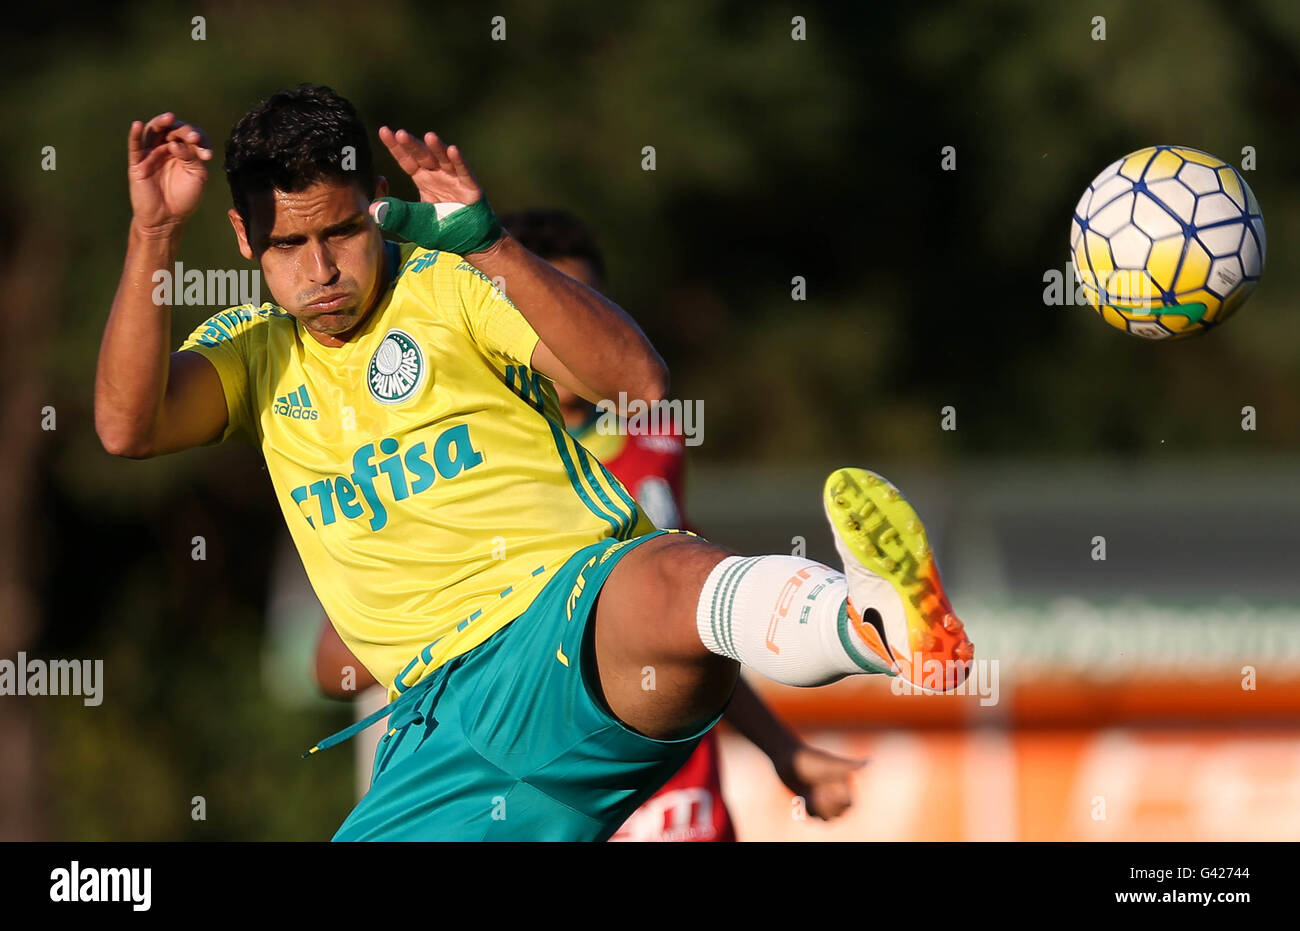 Sao Paulo, Brazil. 06th July, 2016. TRAINING OF TREES - The player Jean, the SE Palmeiras, during training, the Stock Photo